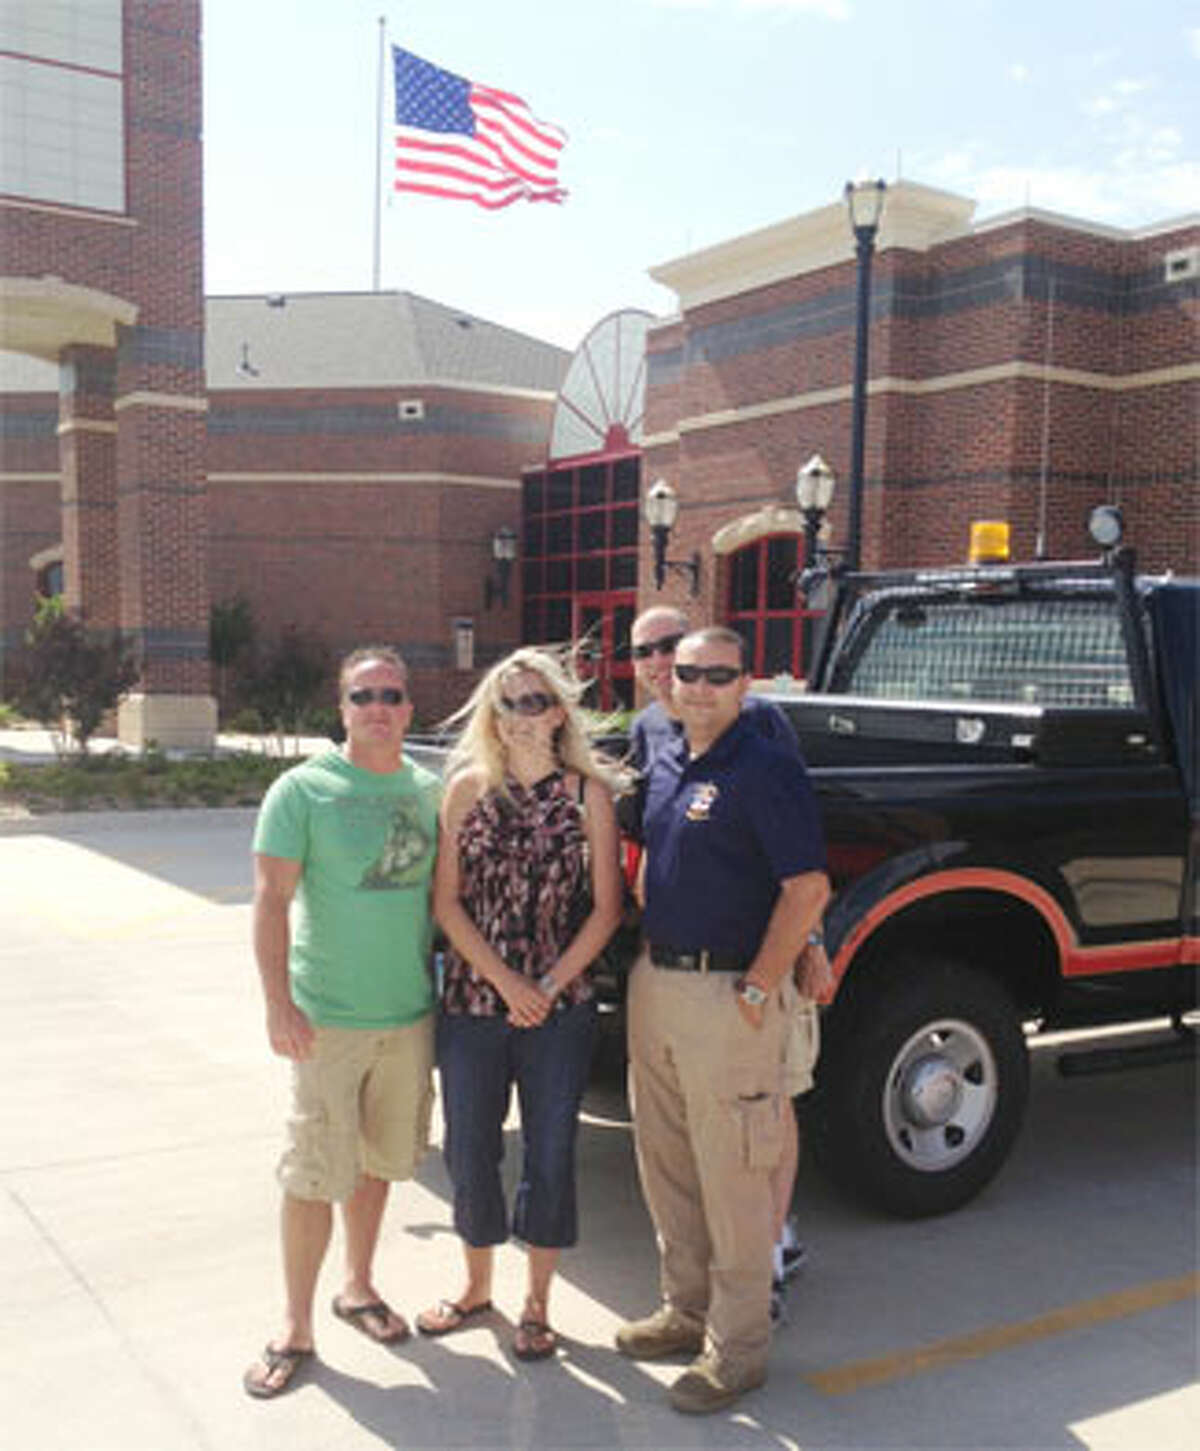 Standing outside the Moore (Okla.) Fire Department are, from left, Moore firefighter Wayne Hamett, Jennifer Hamett, and Echo Hose Ambulance representatives Tim Greer and Jeff Caporaso. (Photo provided by Twitter@EMT_IN_CT)